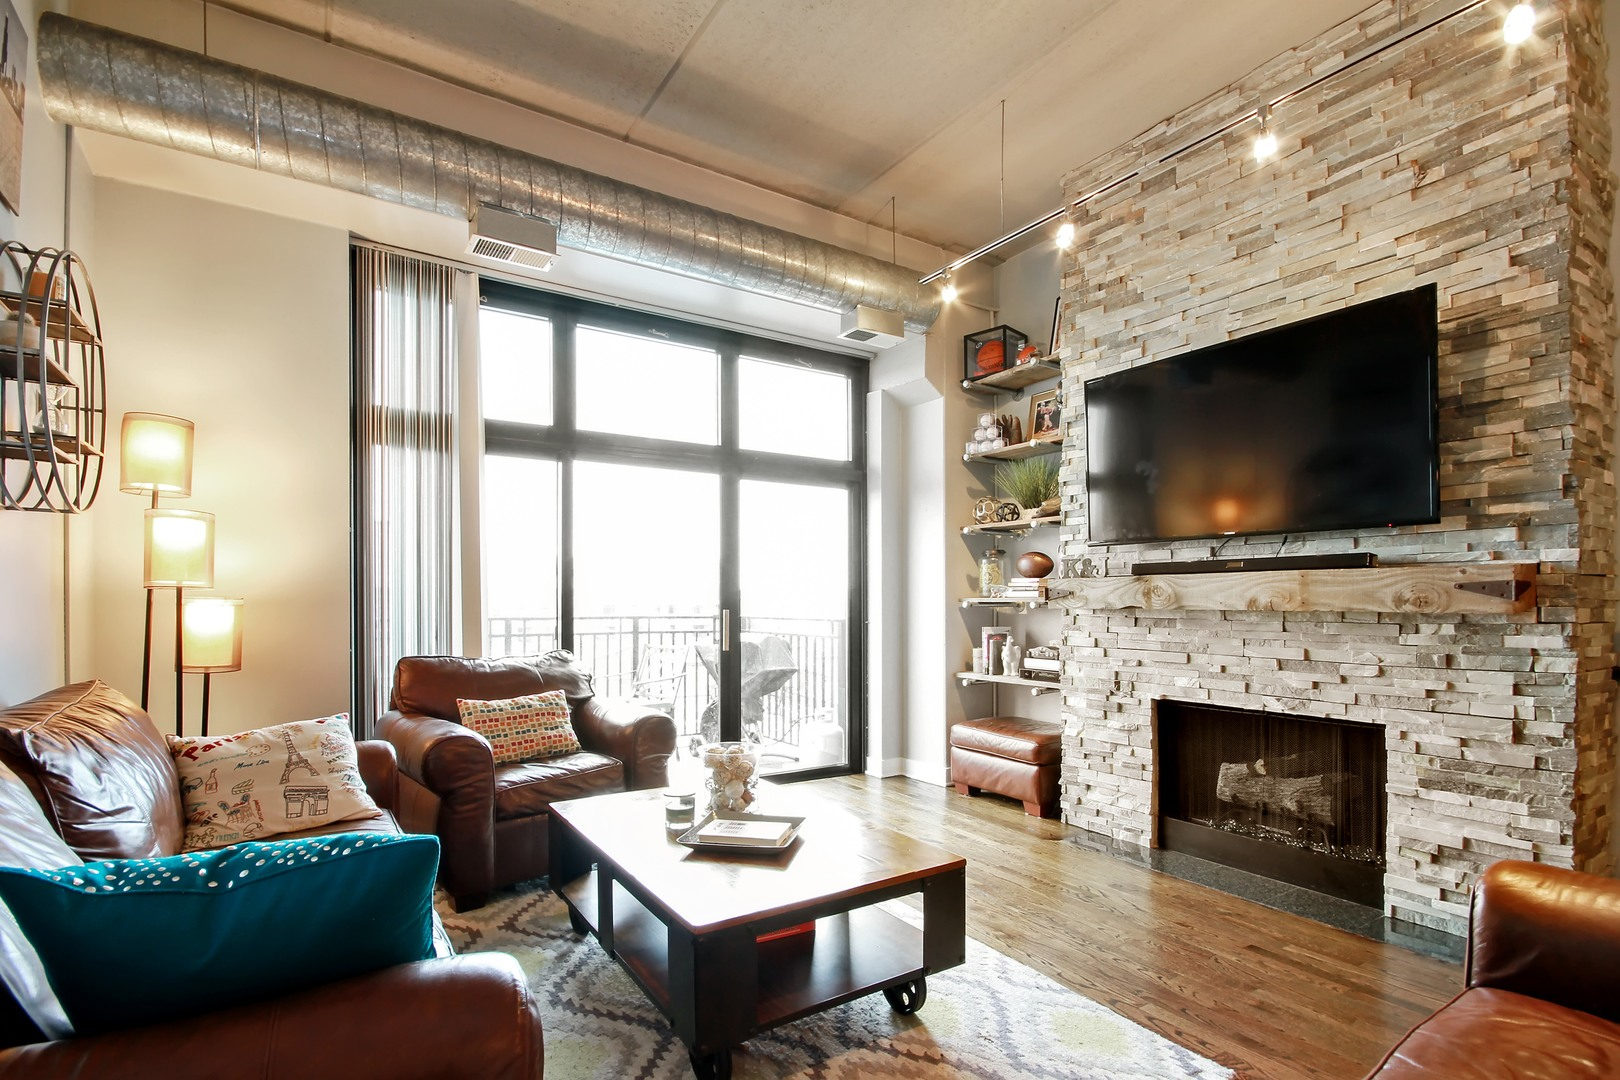 Cinema Lofts - Related Realty Chicago